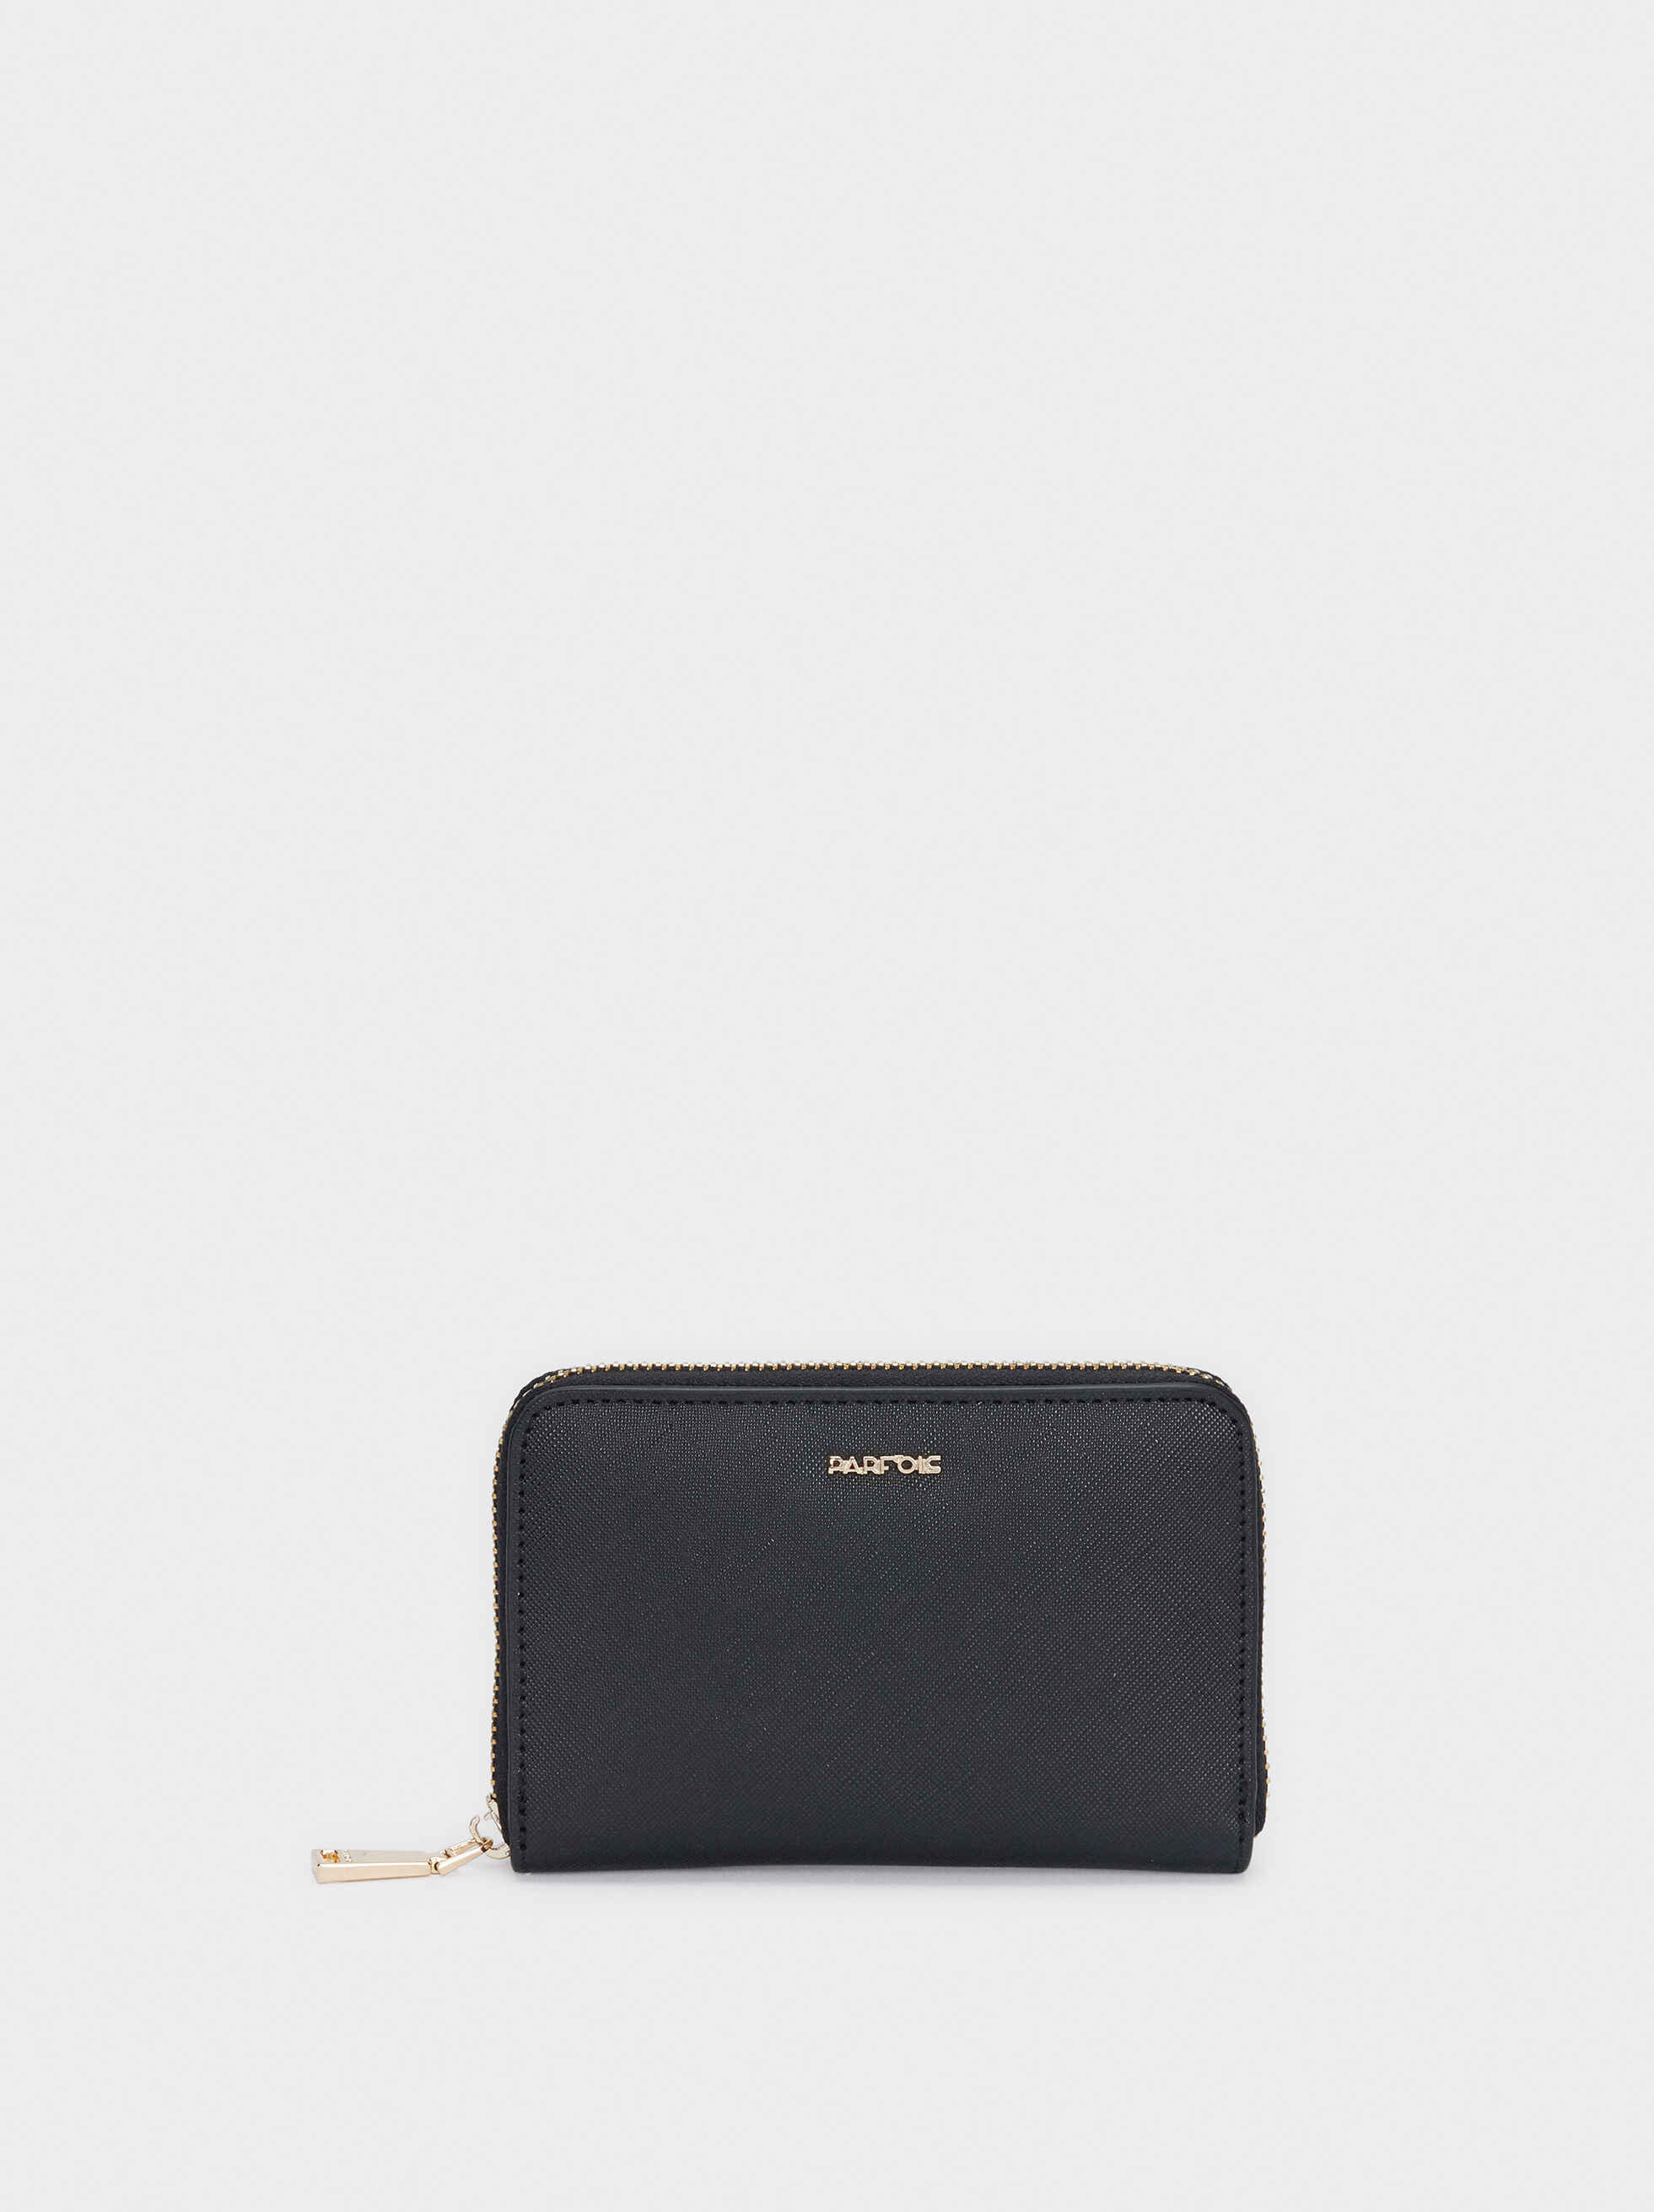 Zipped Purse, Black, hi-res